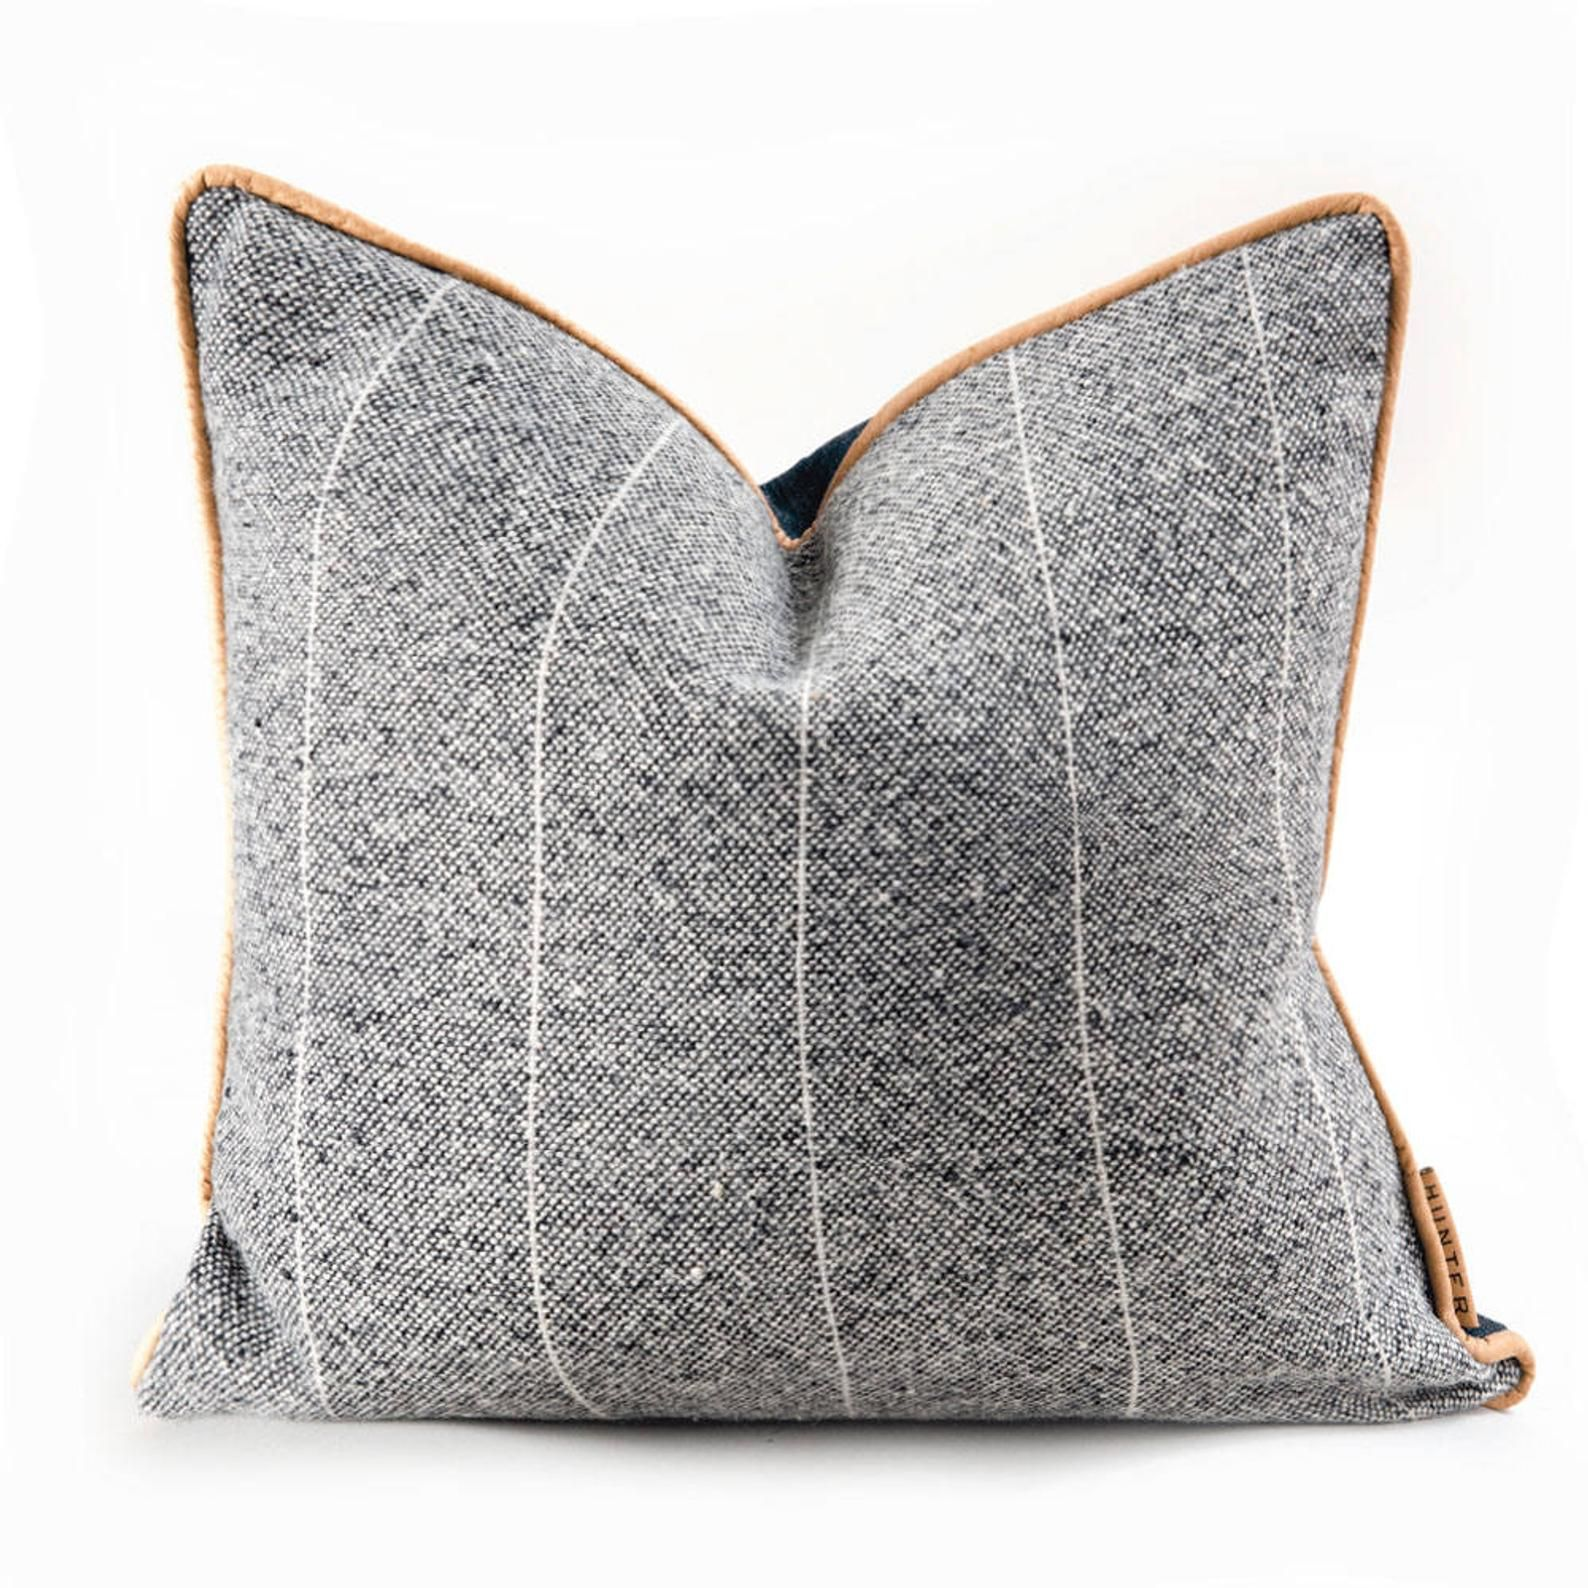 Sandy Lyle Grey Wool And Japanese Denim Leather Piping Accent Etsy Leather Pillow Pillows Japanese Denim